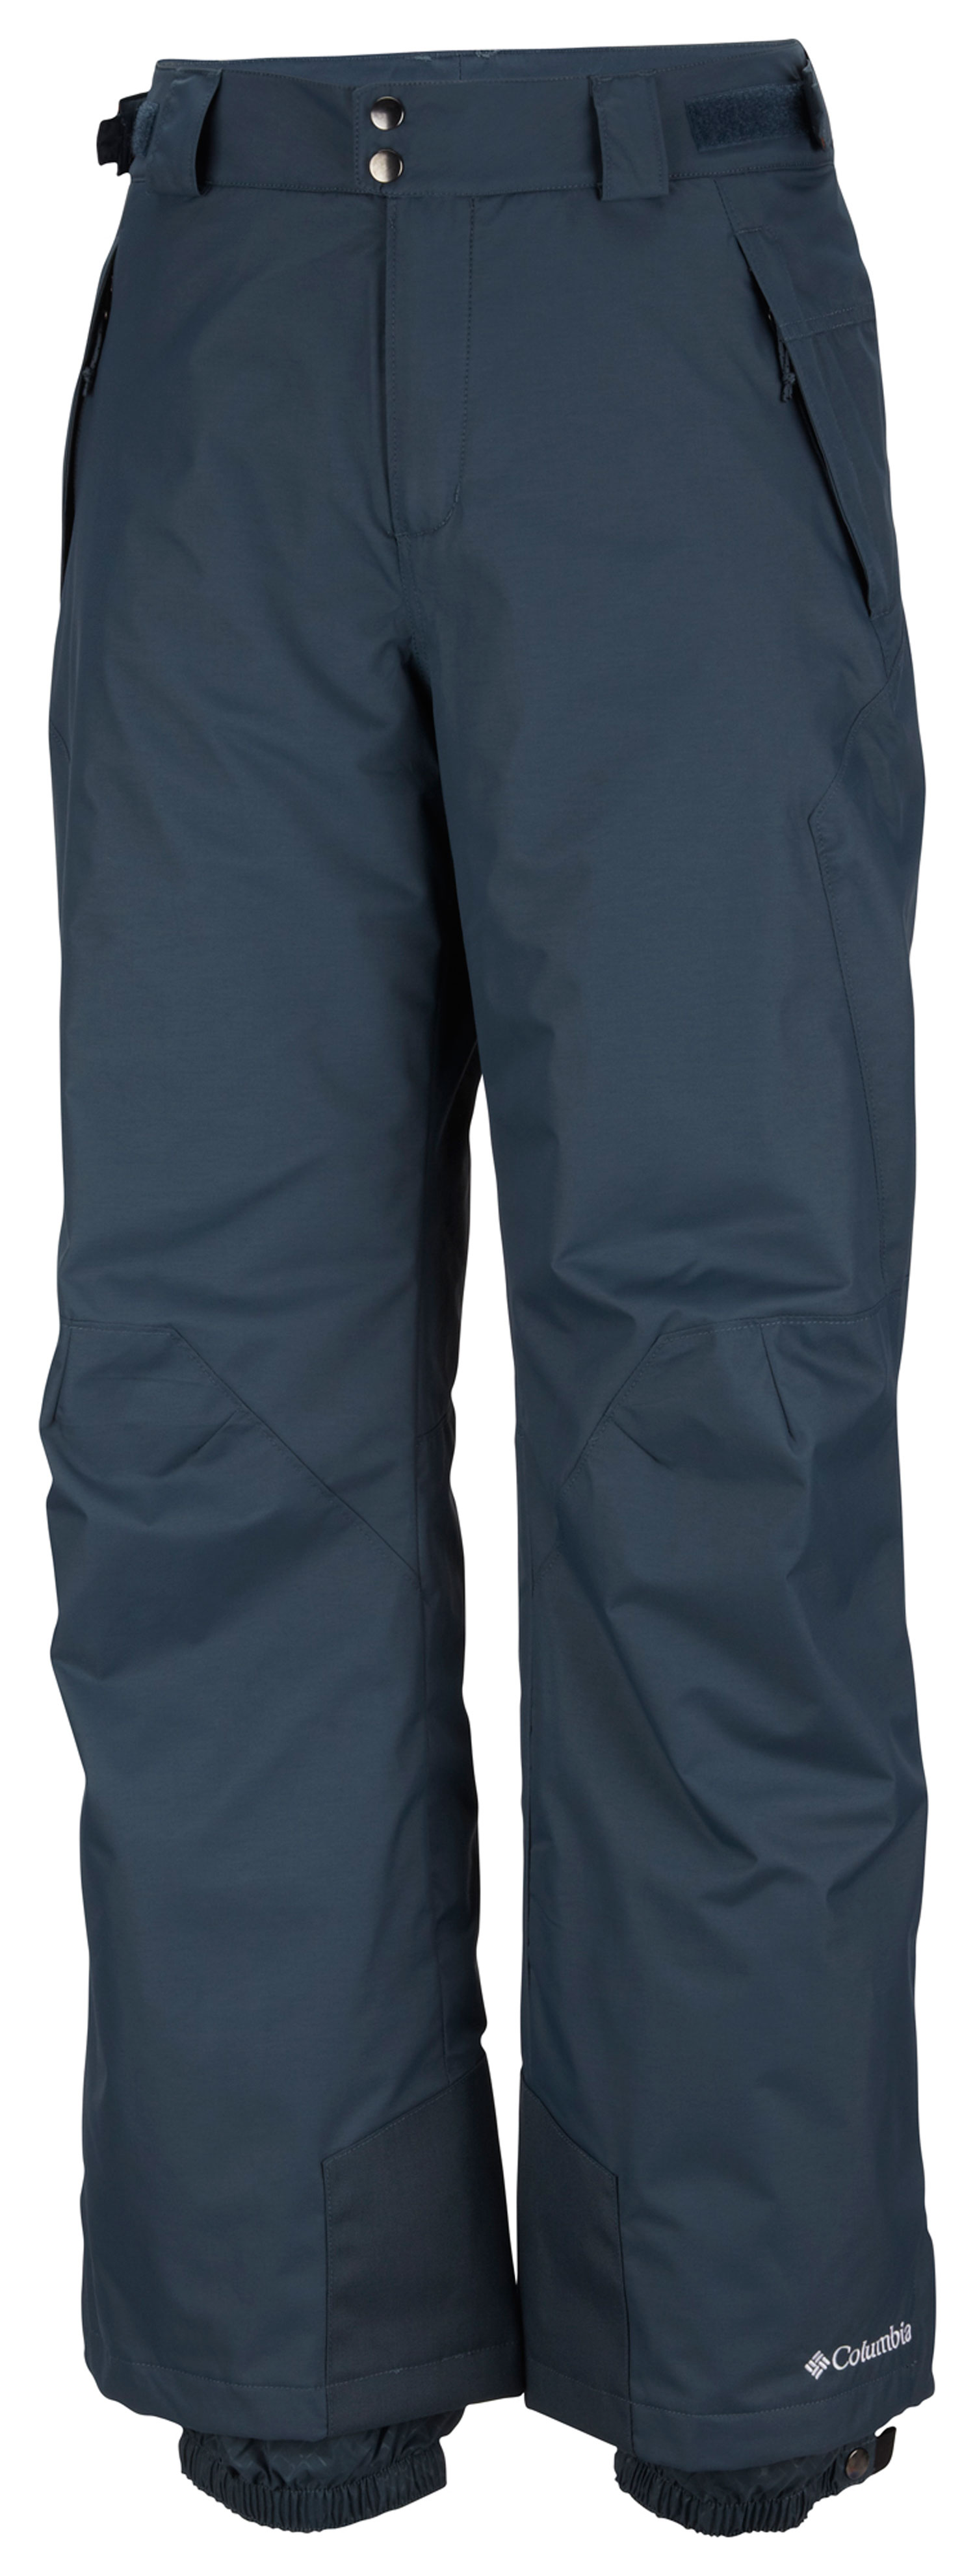 Ski Key Features of the Columbia Bugaboo II Ski Pants: FABRIC Shell: 100% nylon Legacy twill, 100% polyester. Lining: 100% polyester tricot. Insulation: 100% polyester 40g Microtemp insulation. FIT Modern Classic Omni-Tech™ waterproof/breathable critically seam sealed Adjustable waist tabs Internal adjustable leg gaiter Exterior adjustable waist Reinforced cuff guard Articulated knees - $66.95